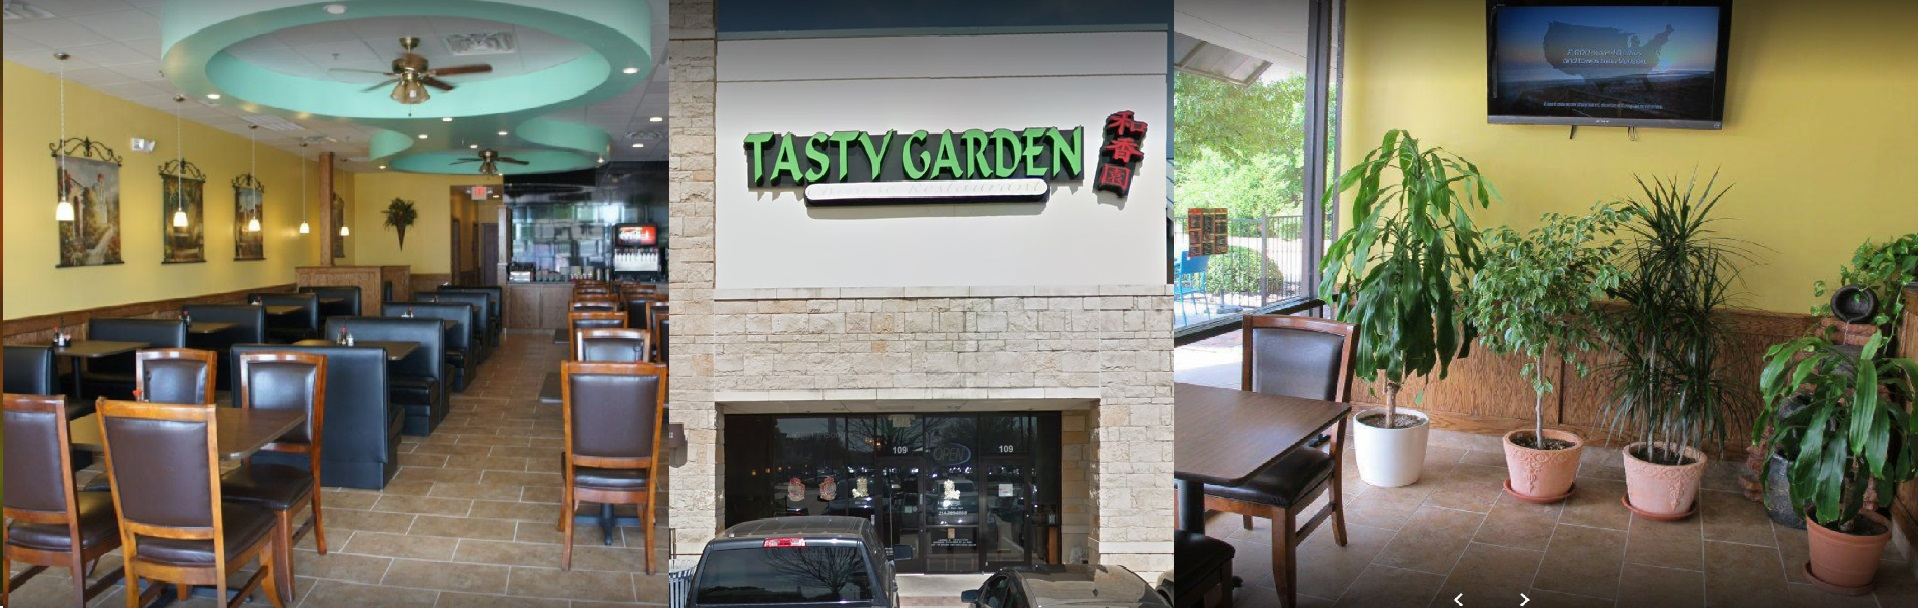 Your Favorite Chinese Food At Tasty Garden Restaurant